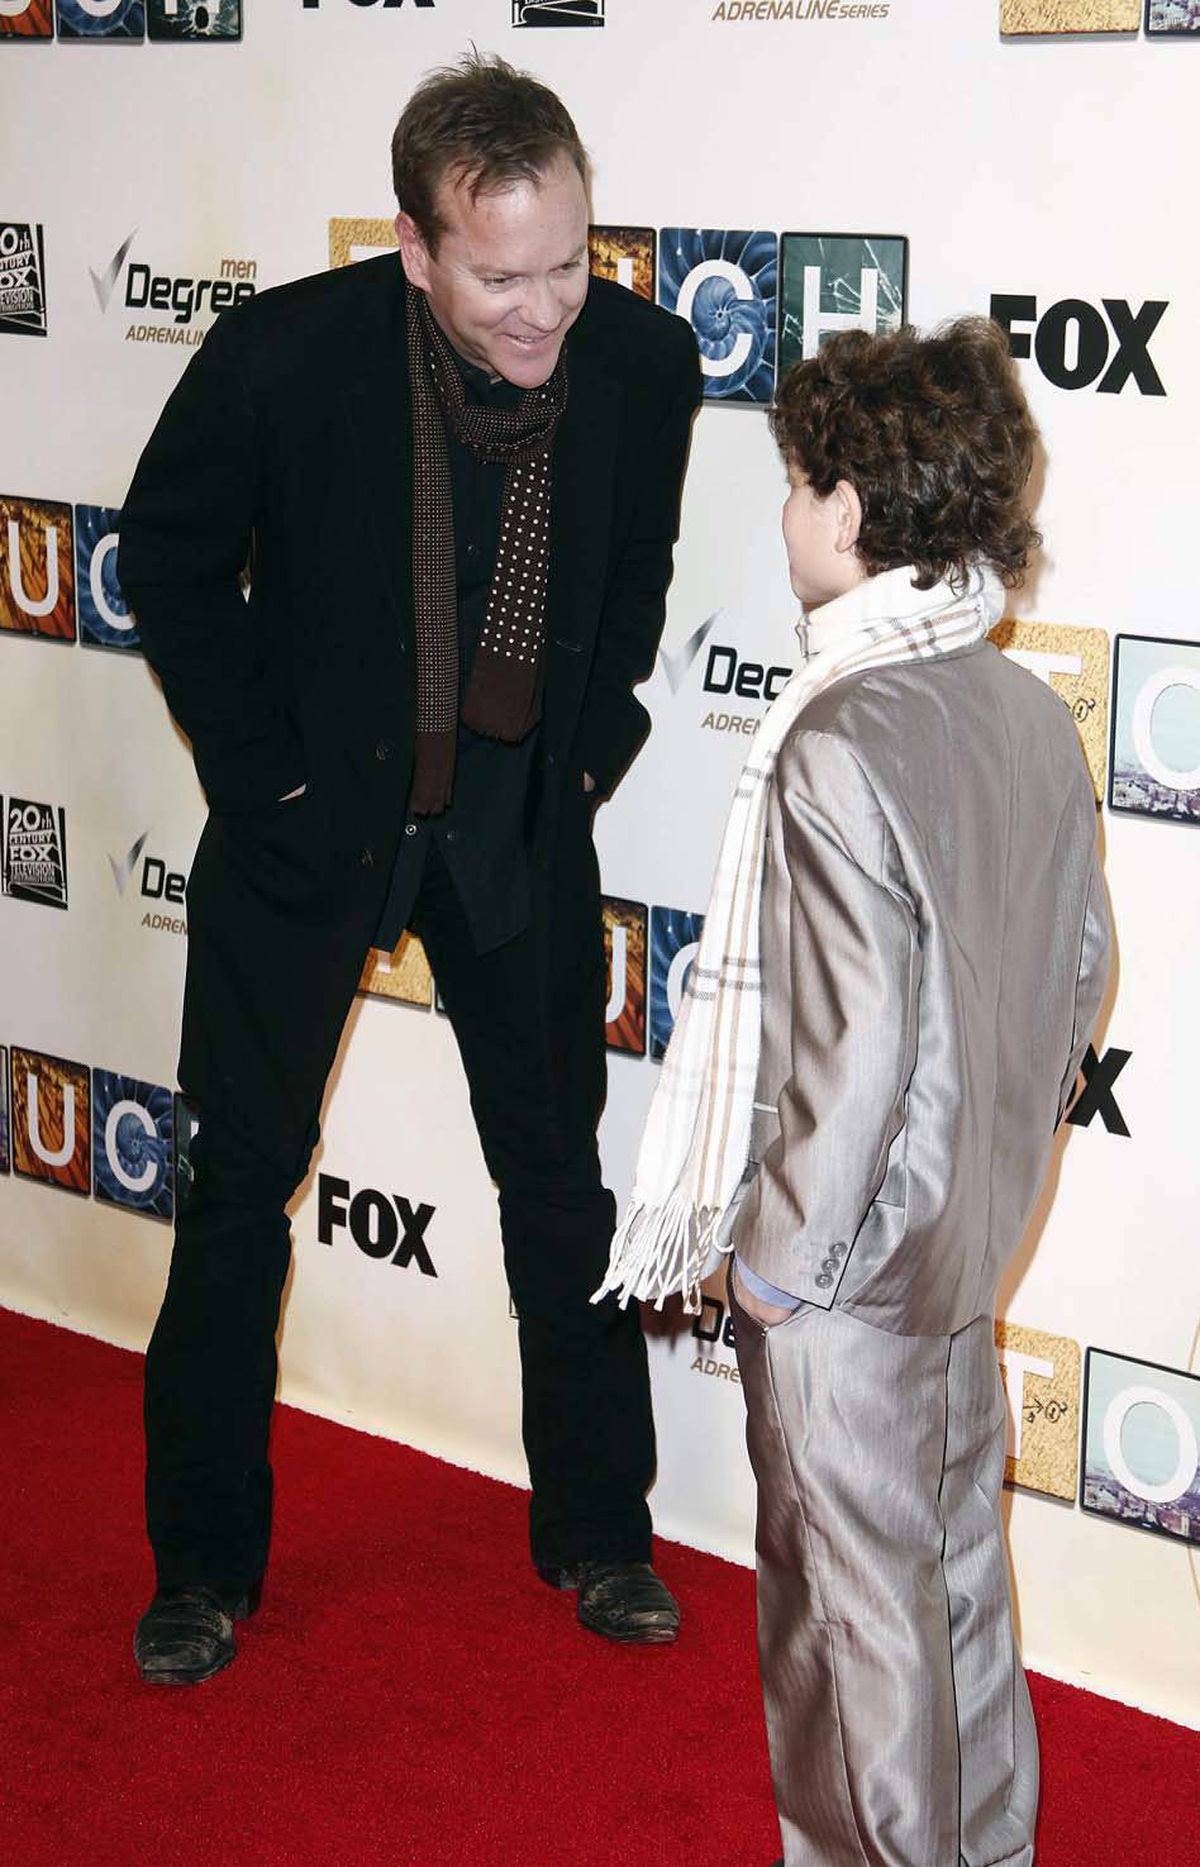 Actor Kiefer Sutherland (left) gently explains to his nattily attired young costar David Mazouz that when he has worked in show business for 30 years and carried an internationally syndicated hit series for a network for eight seasons, he too can try to dress like the star of the goddamn show. Punk.